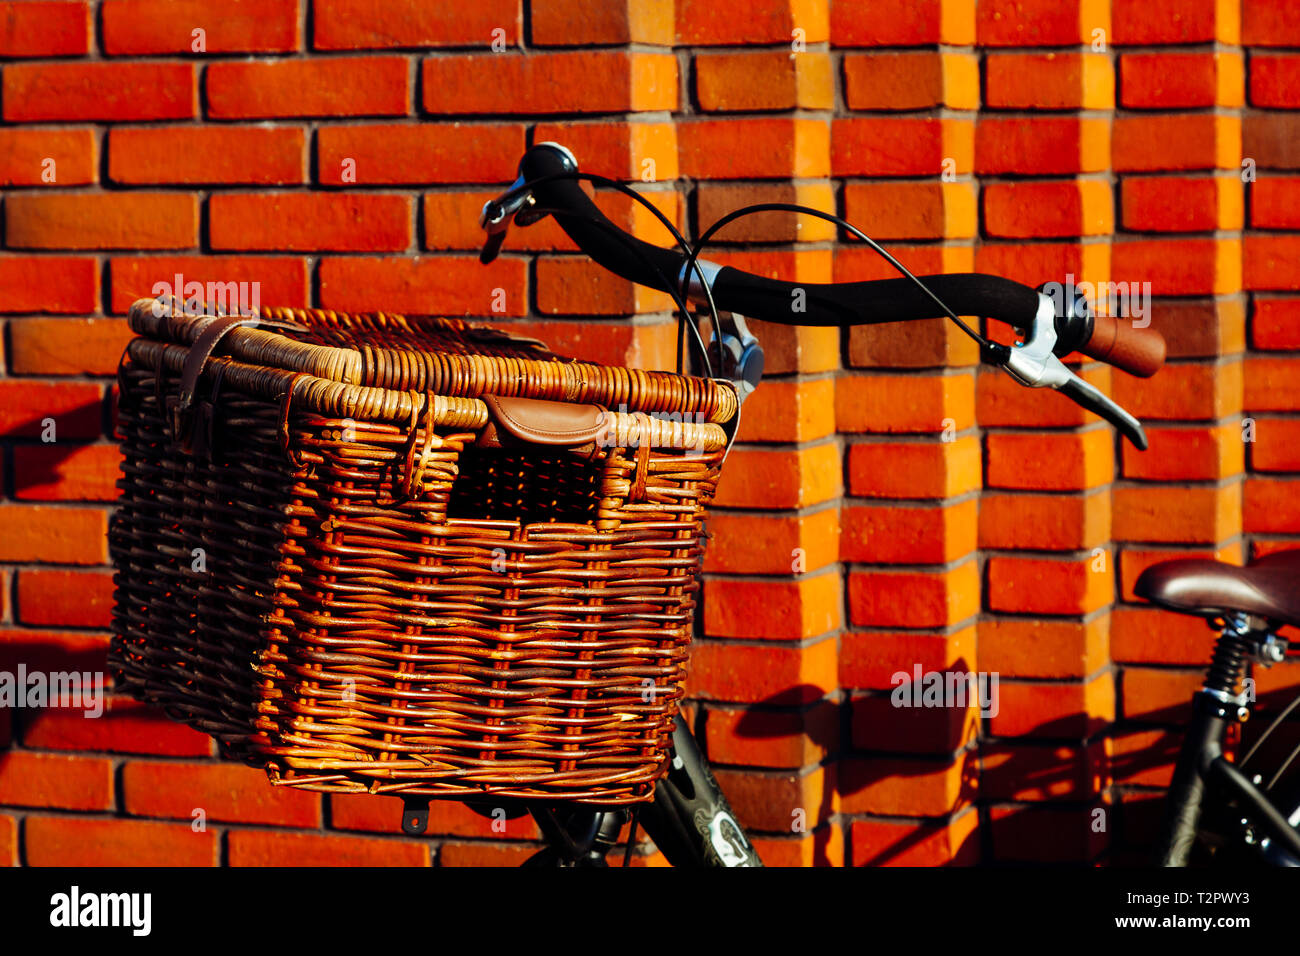 f169eea7e4d Large vintage wicker brown basket on a bicycle. Old dutch bike with a  wooden basket